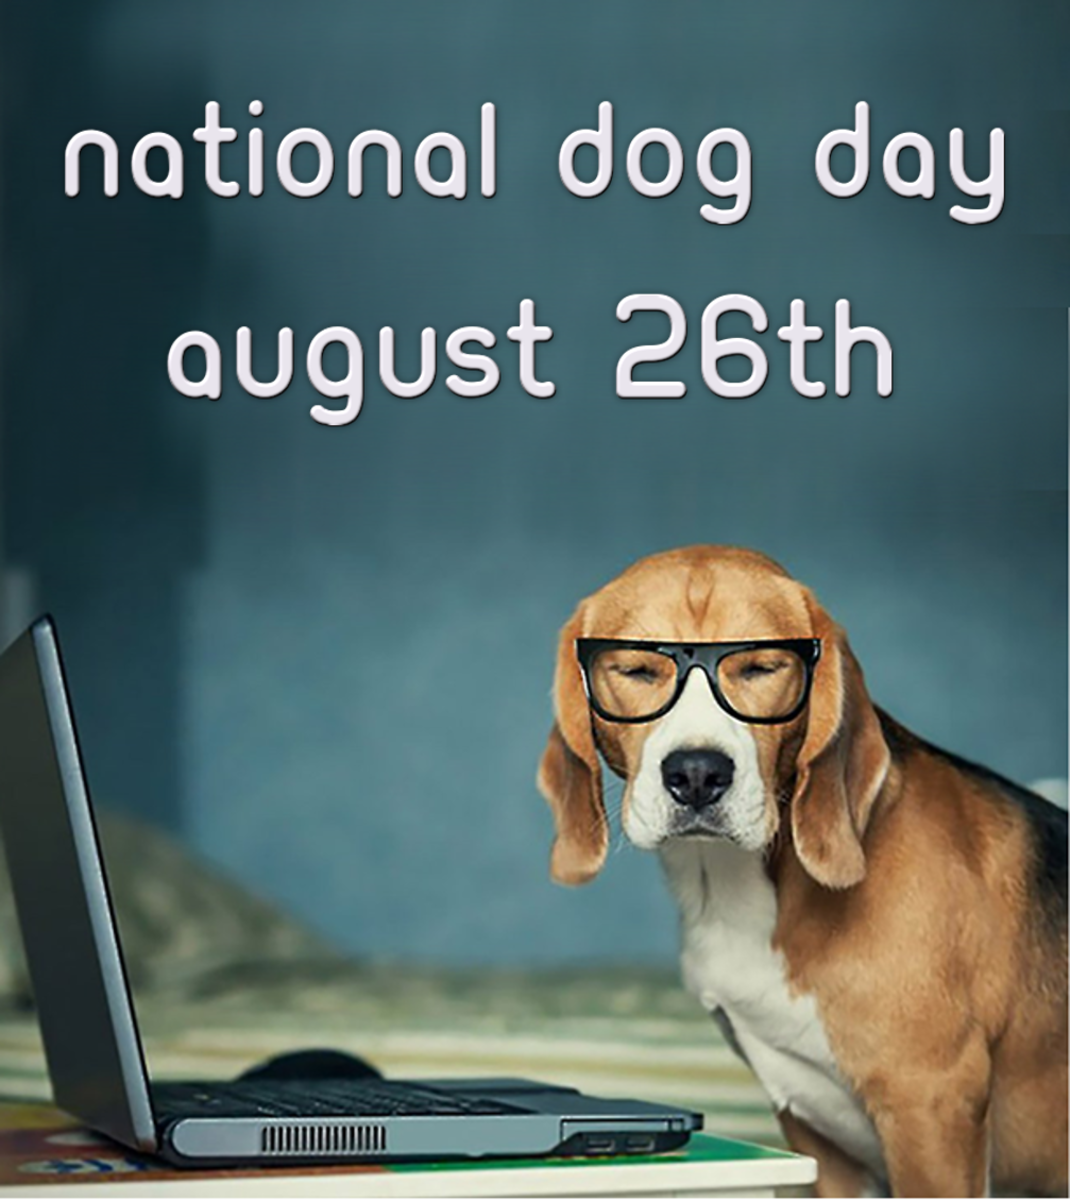 August 26th, National Dog Day